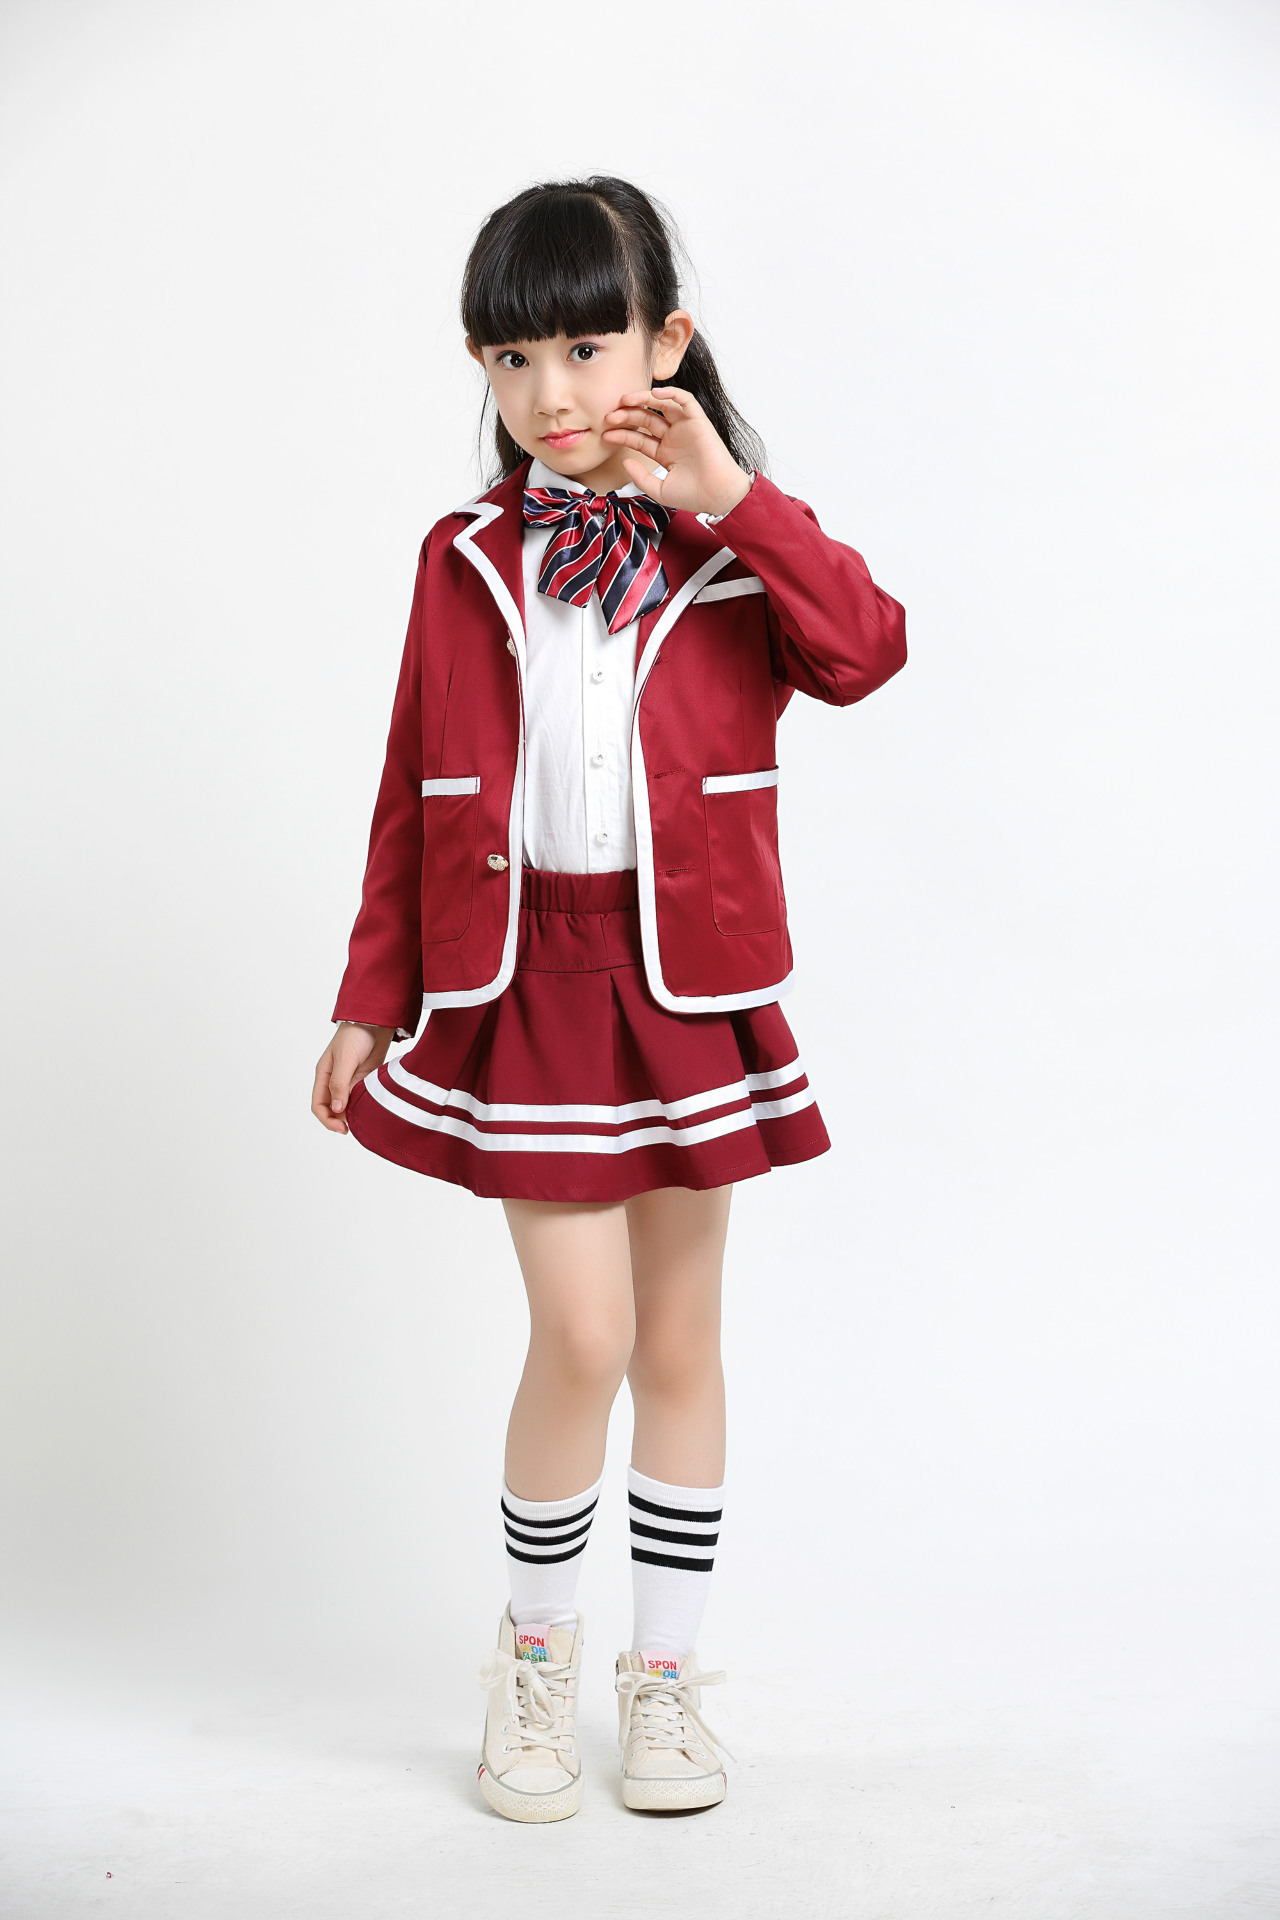 British Middle School Uniform Girl and Boys Uniforms for School